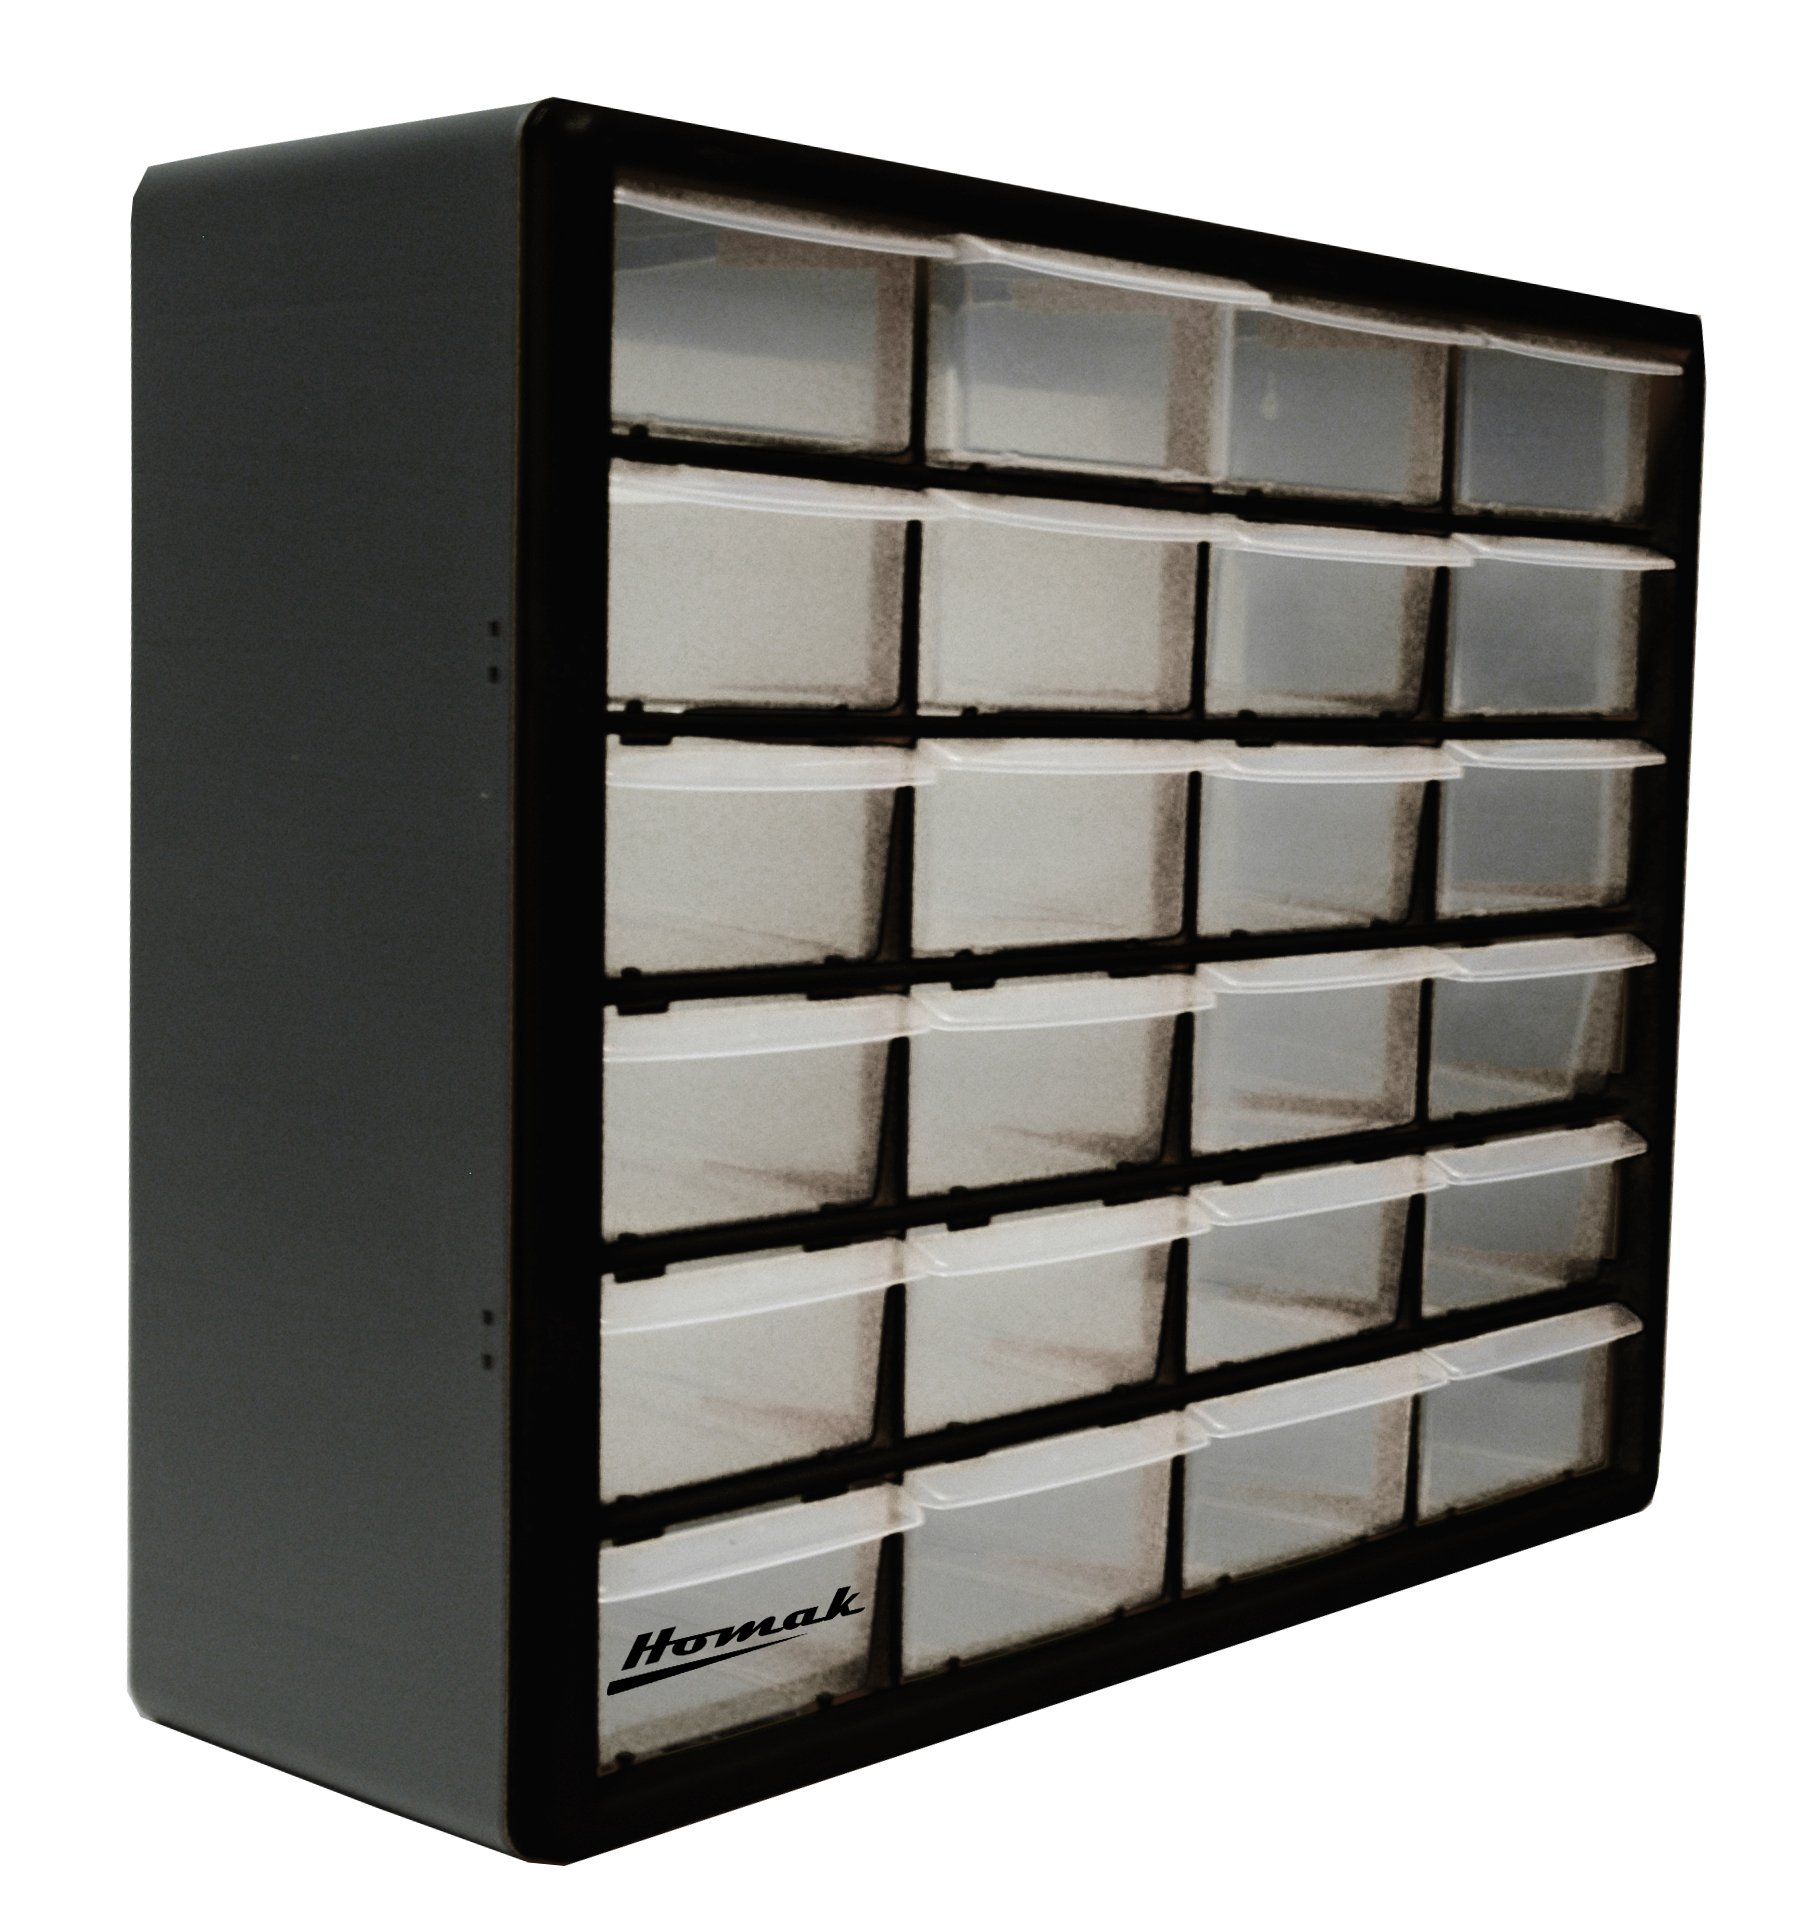 Homak 24-Drawer Parts Organizer, Black, HA01024152